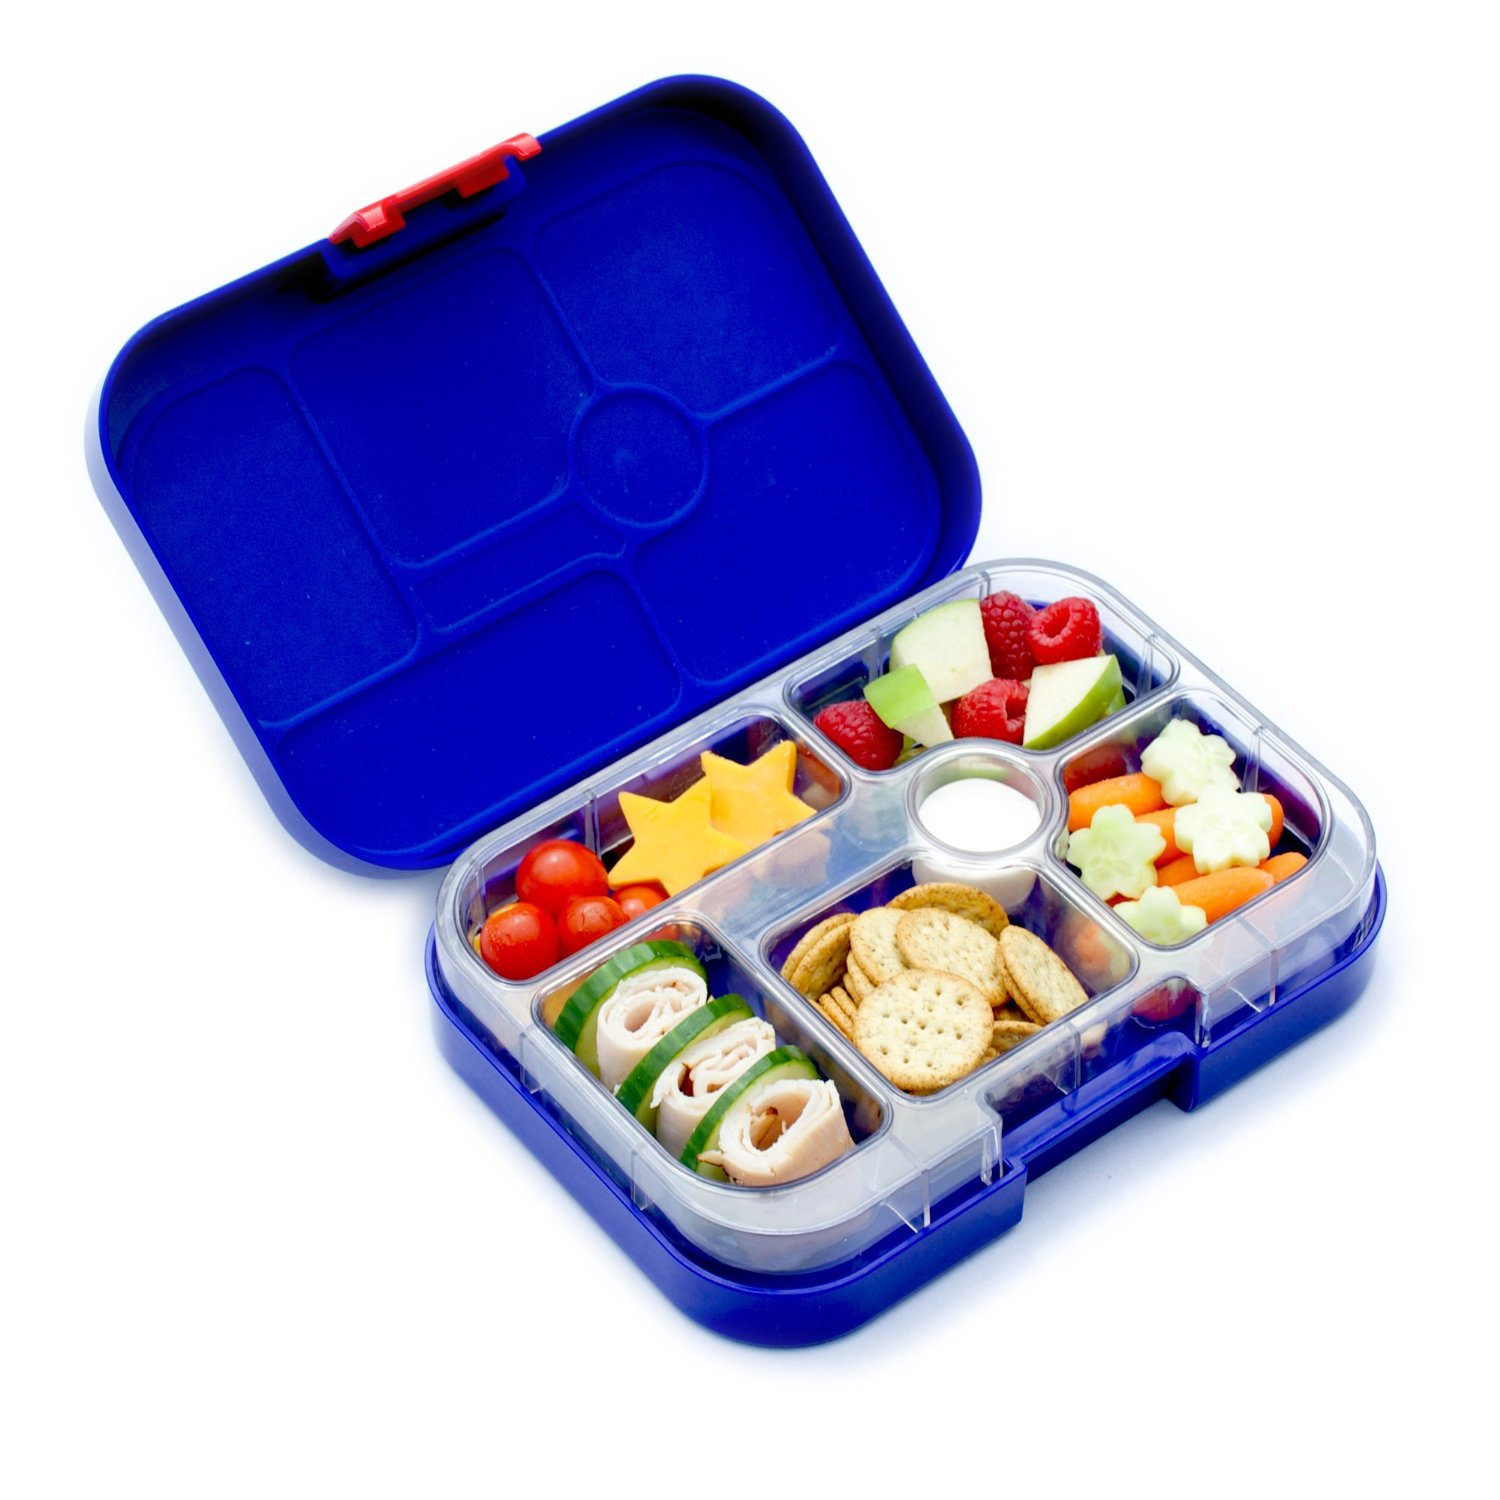 Make sure to choose the perfect lunchbox! It needs to be well-insulated and leak-proof.